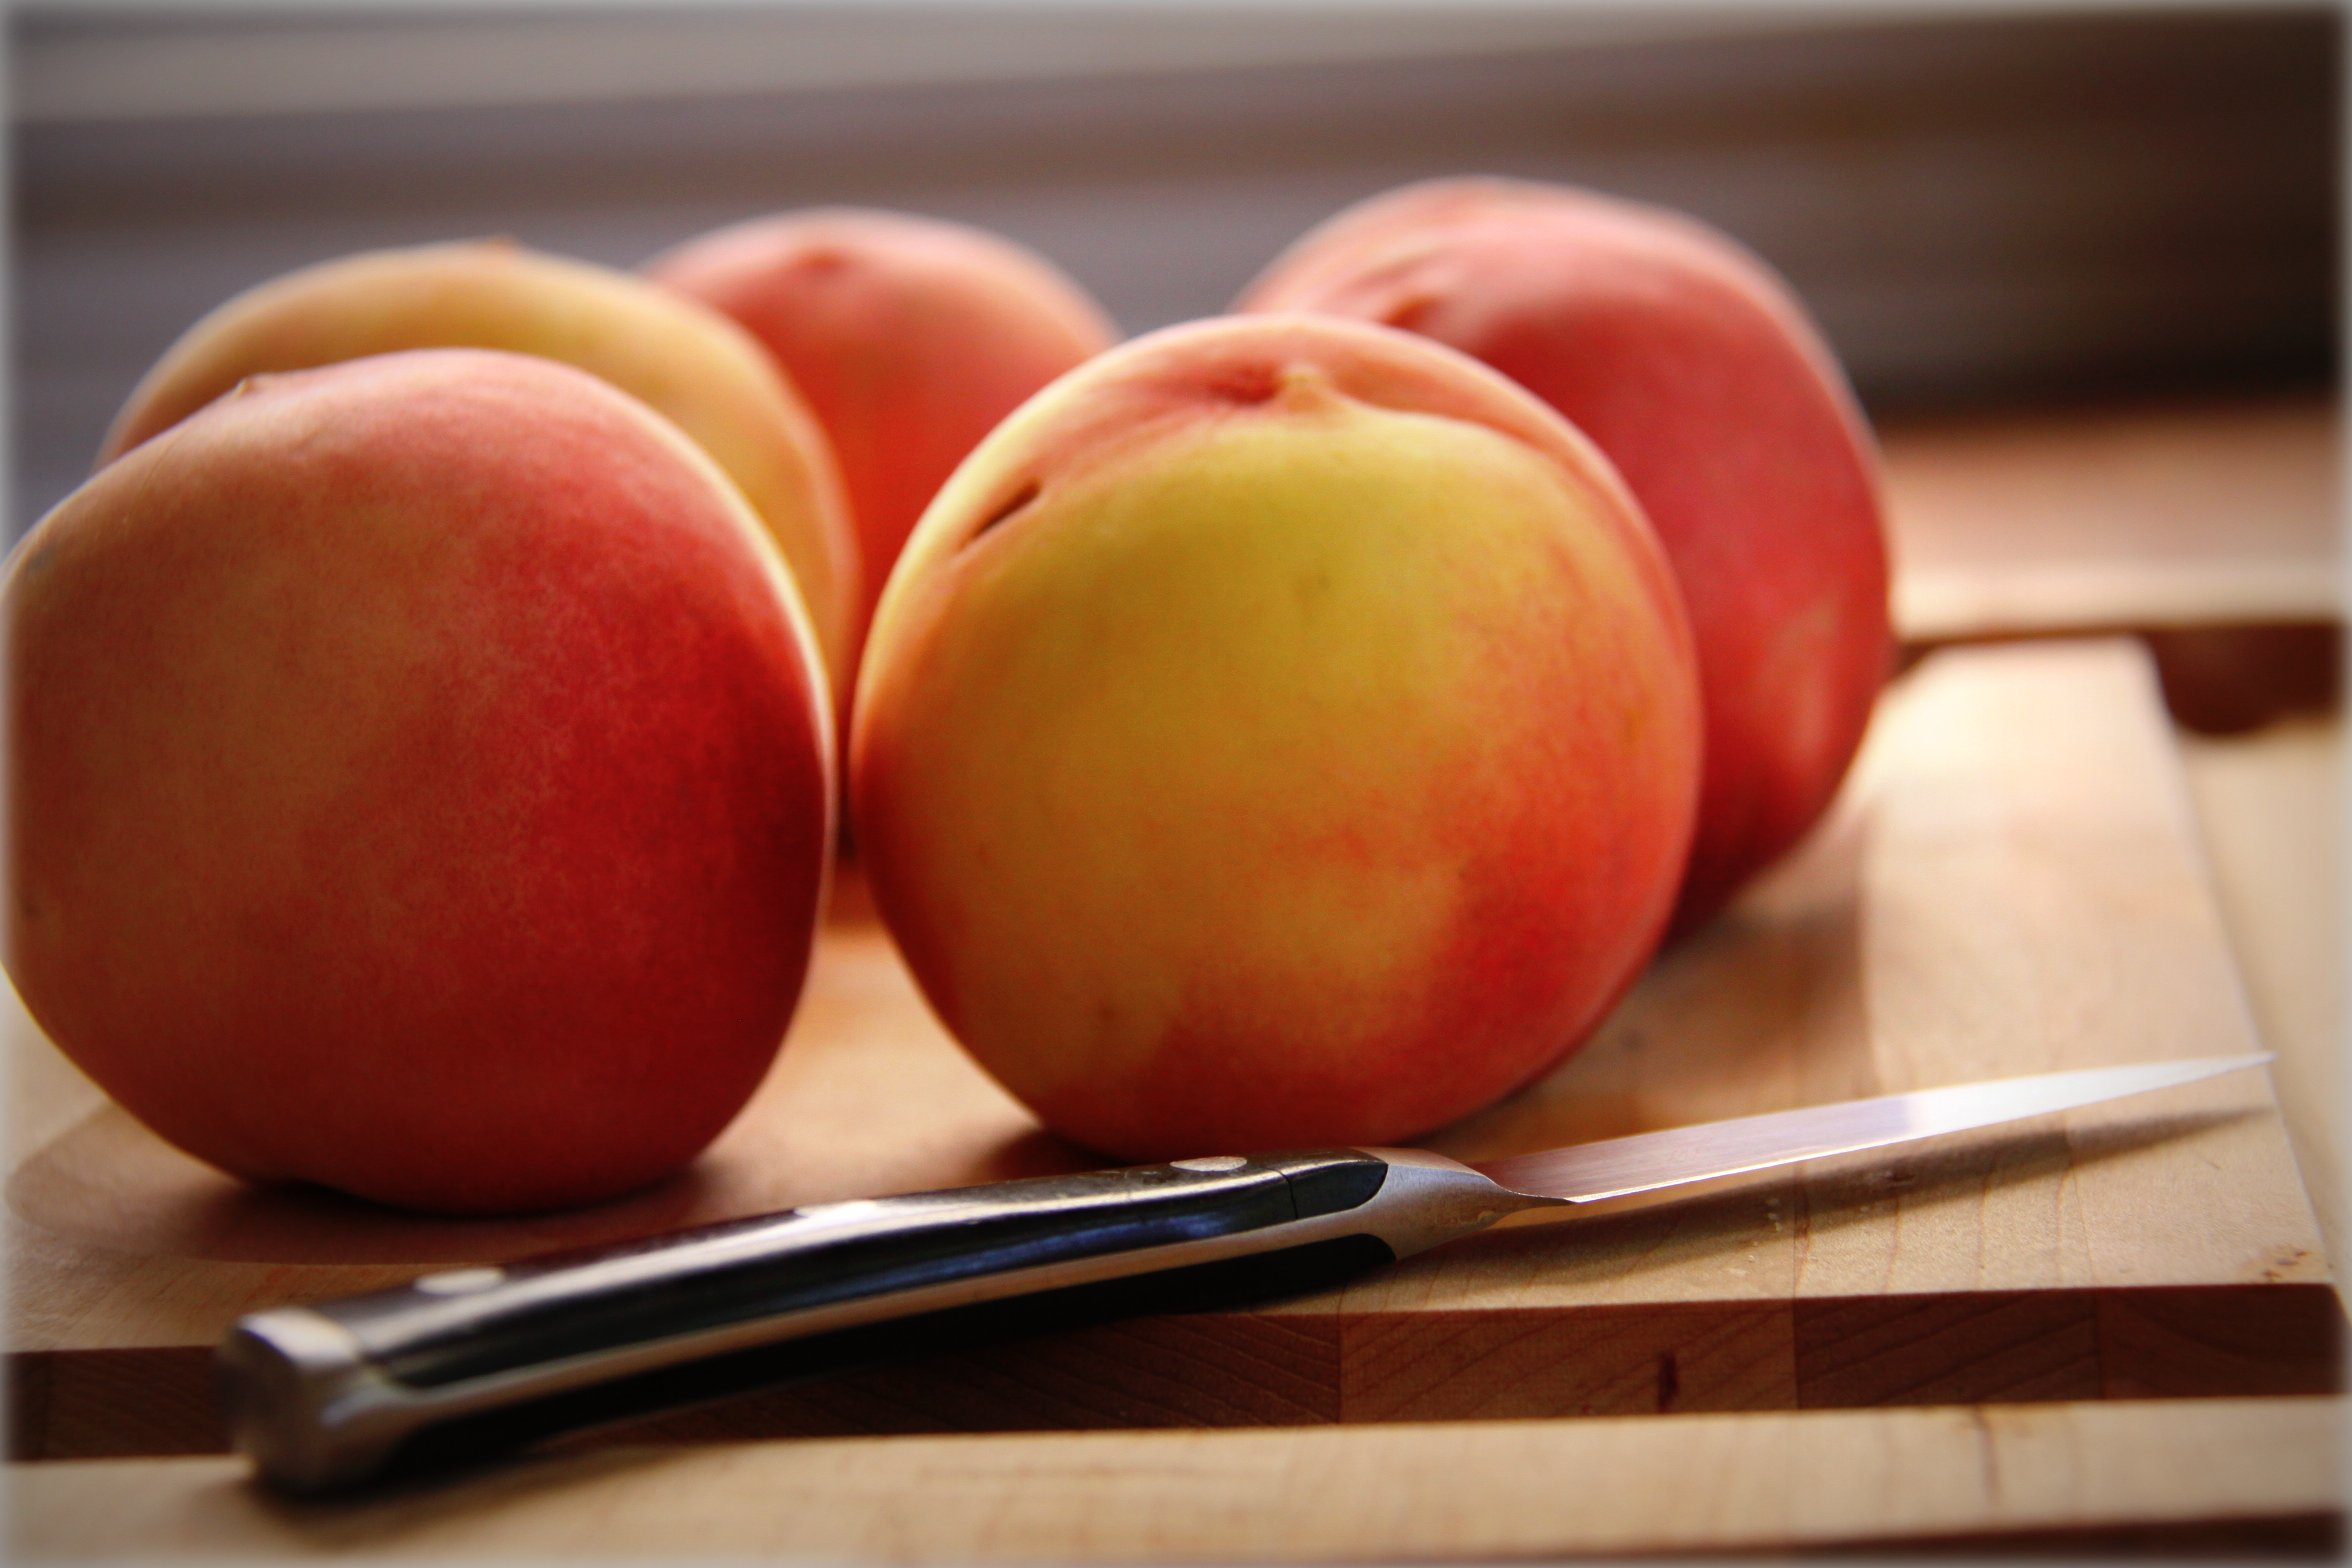 peaches and knife